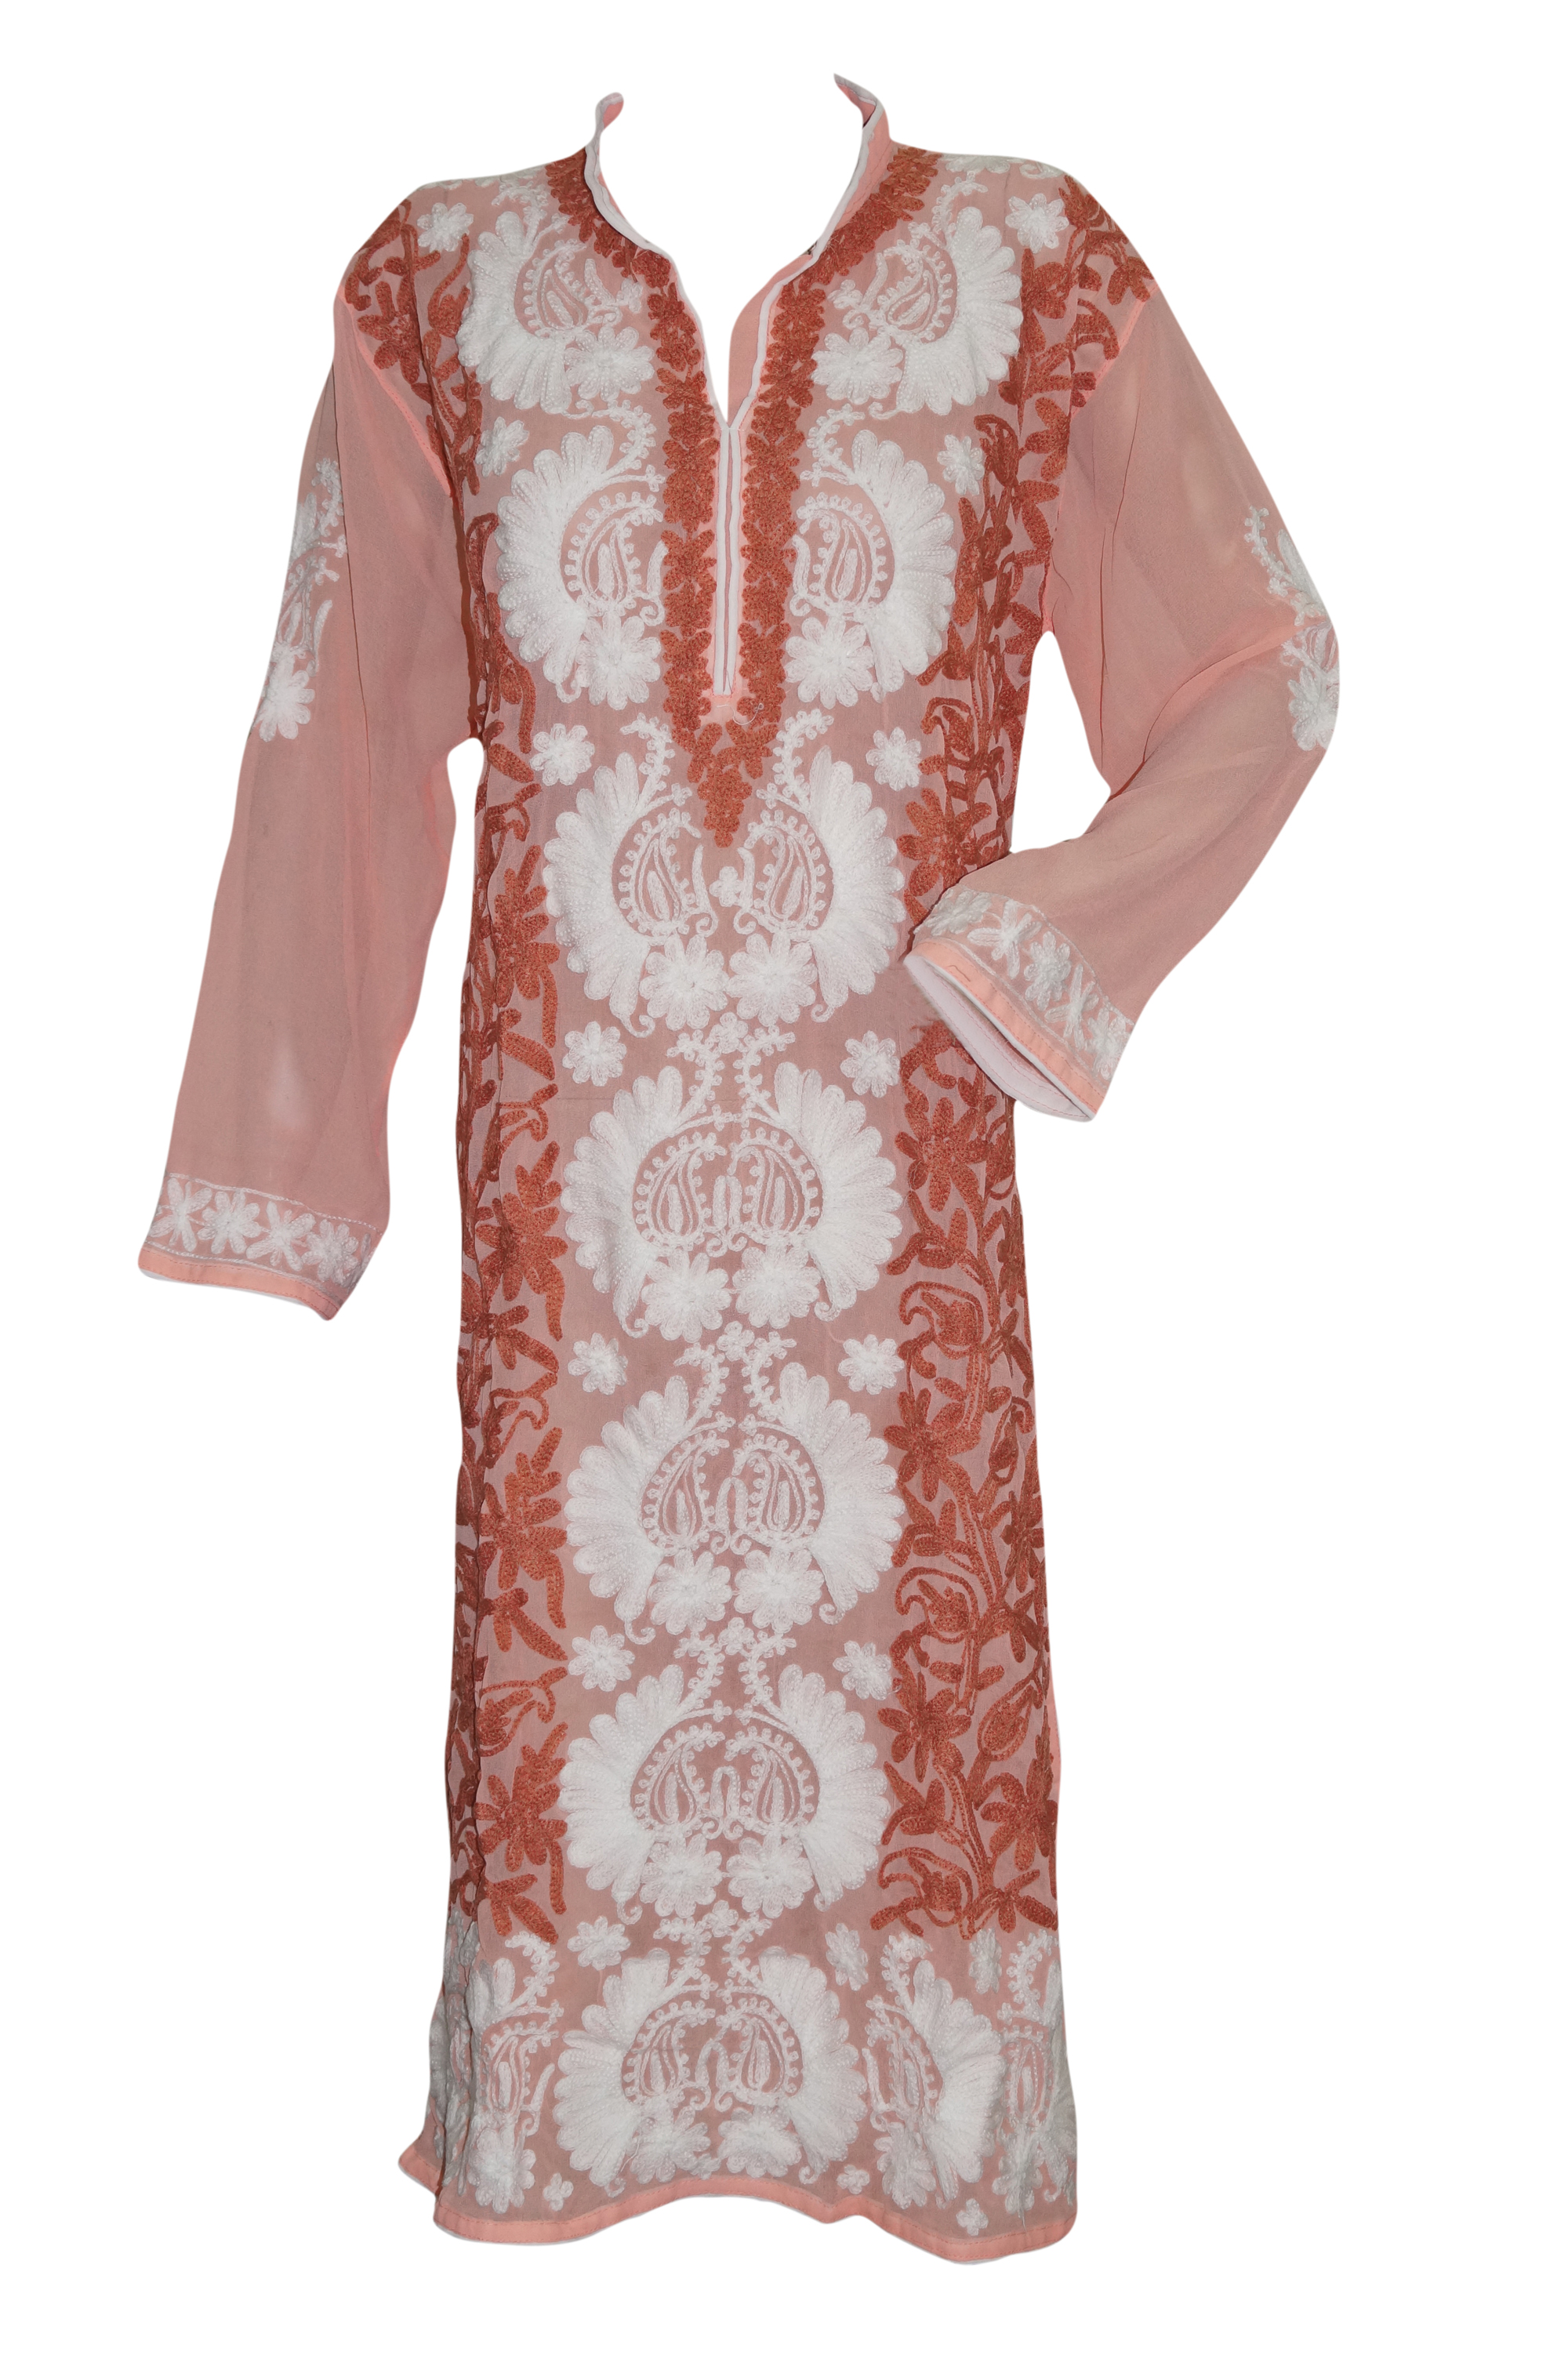 Mogul Designer Indian Long Tunic Peach White Floral Embroidered Caftan Kurti Cover Up Dress